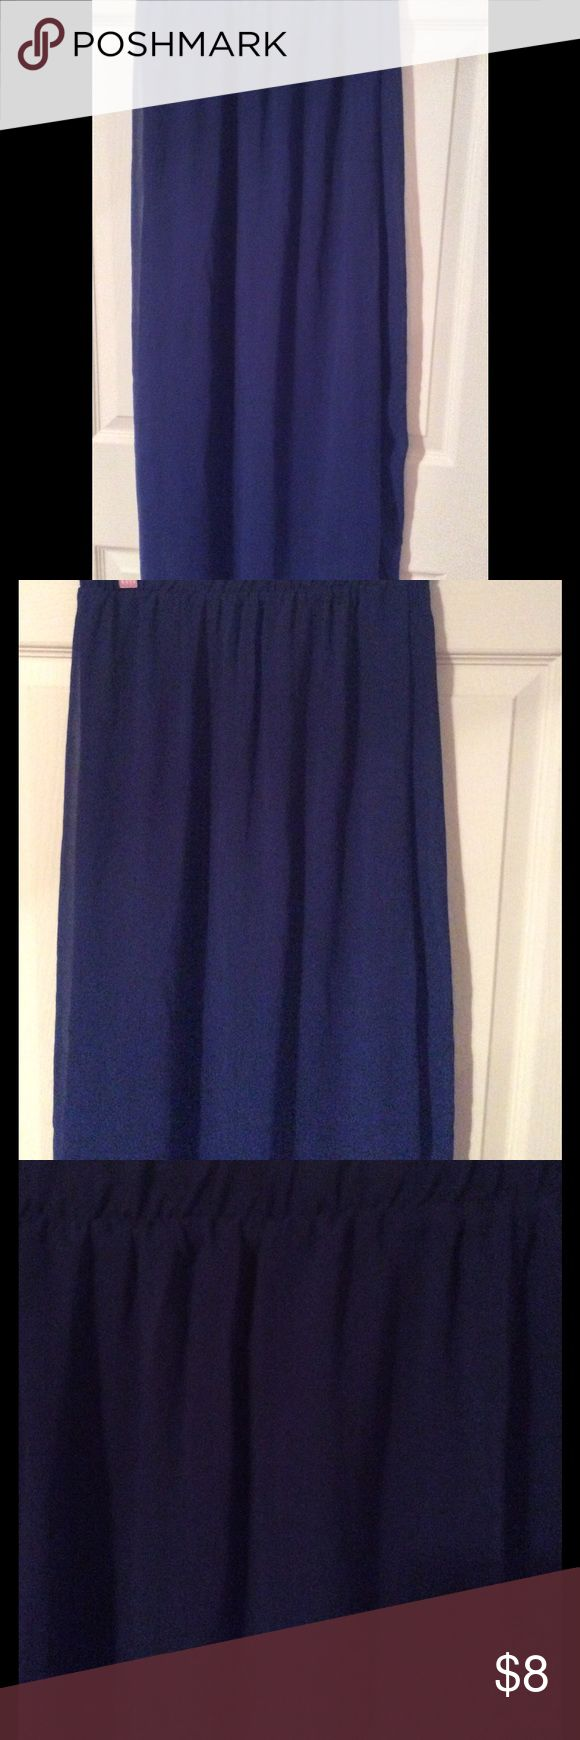 Dark blue maxi skirt This  blue maxi skirt is in great condition it has been worn once  it is a size small xxis Skirts Maxi